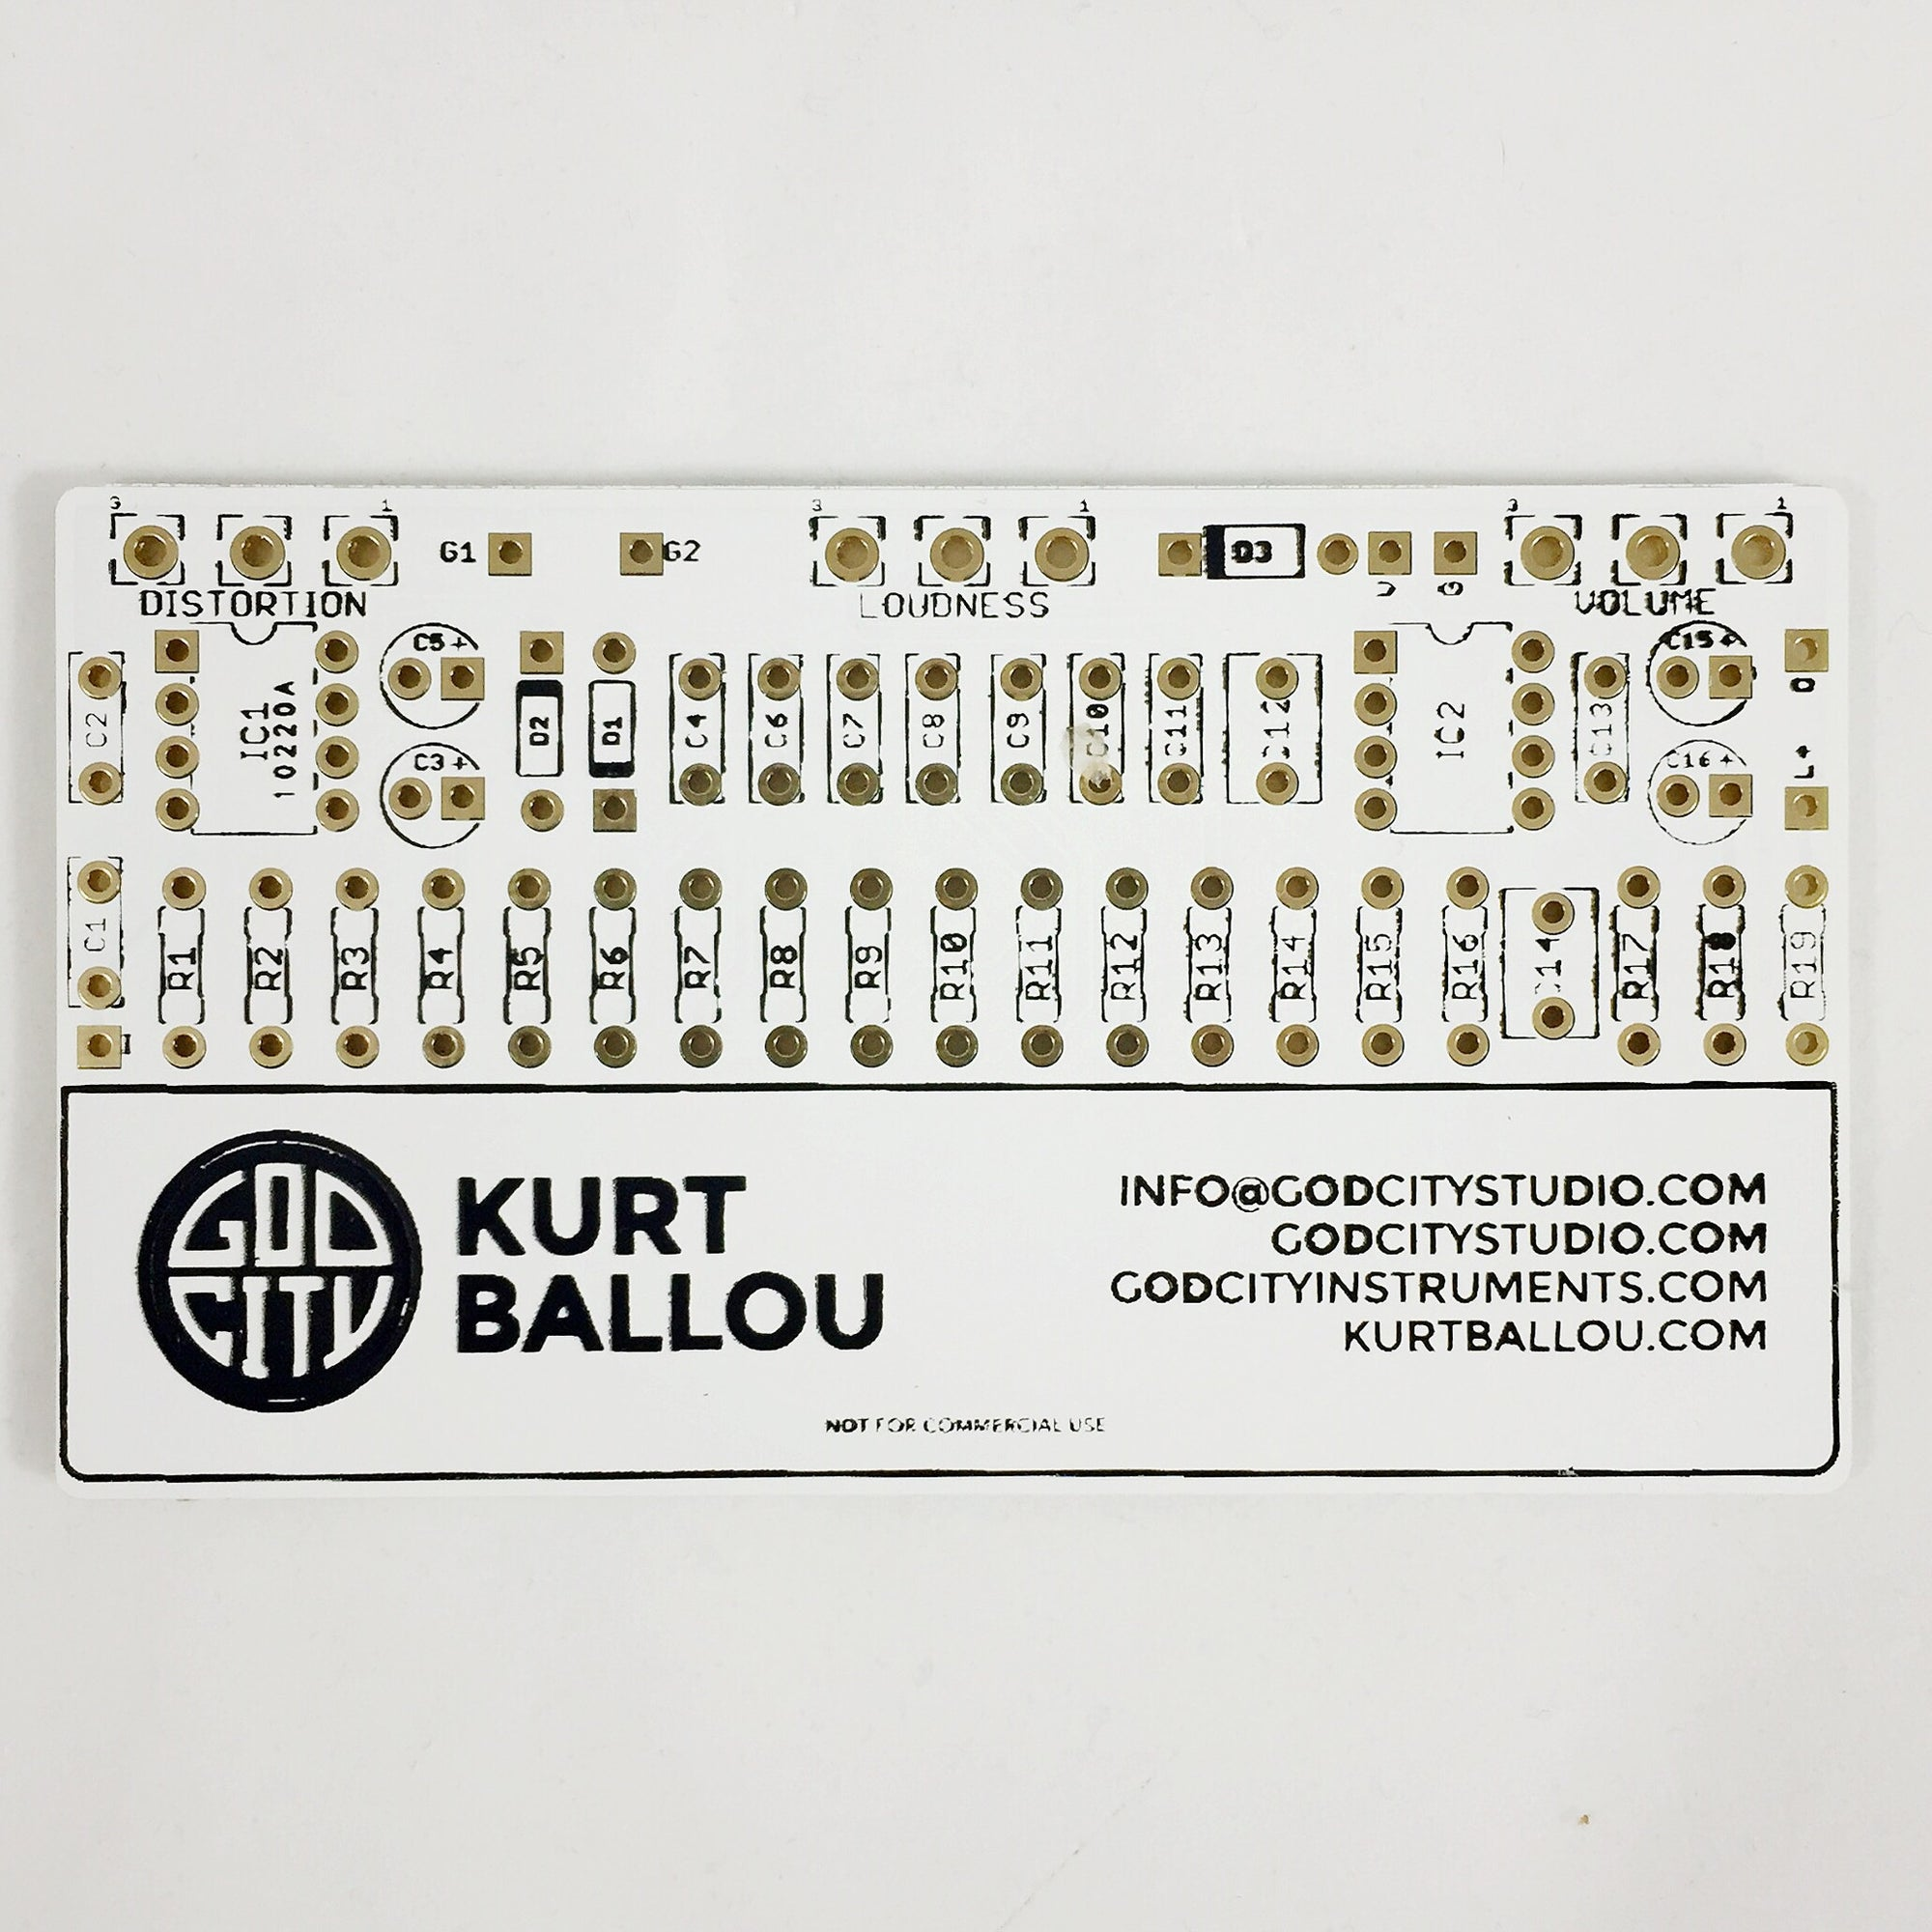 godcity printed circuit board business card wish inc